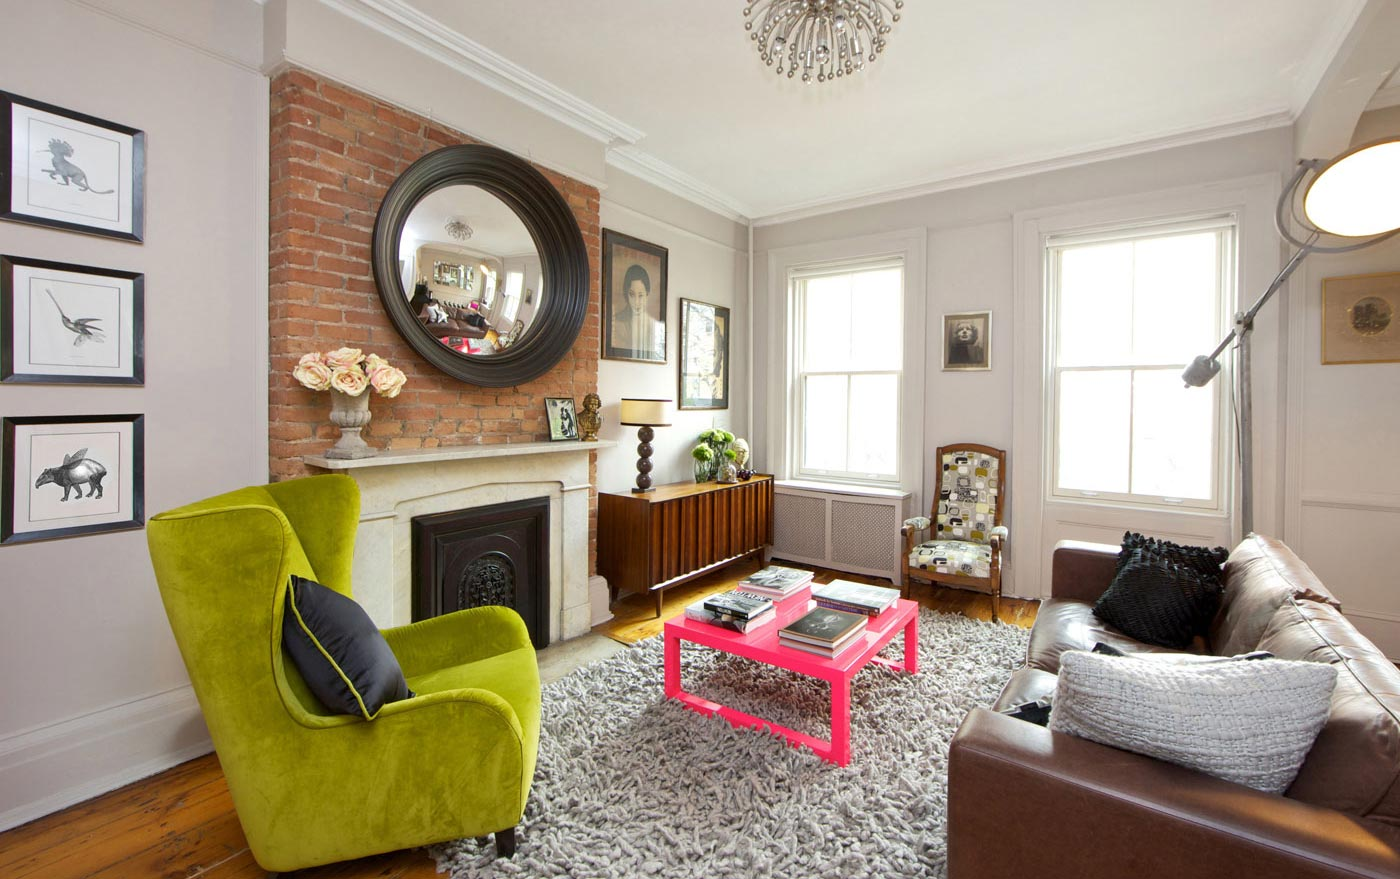 NYC Townhouse Interior Design